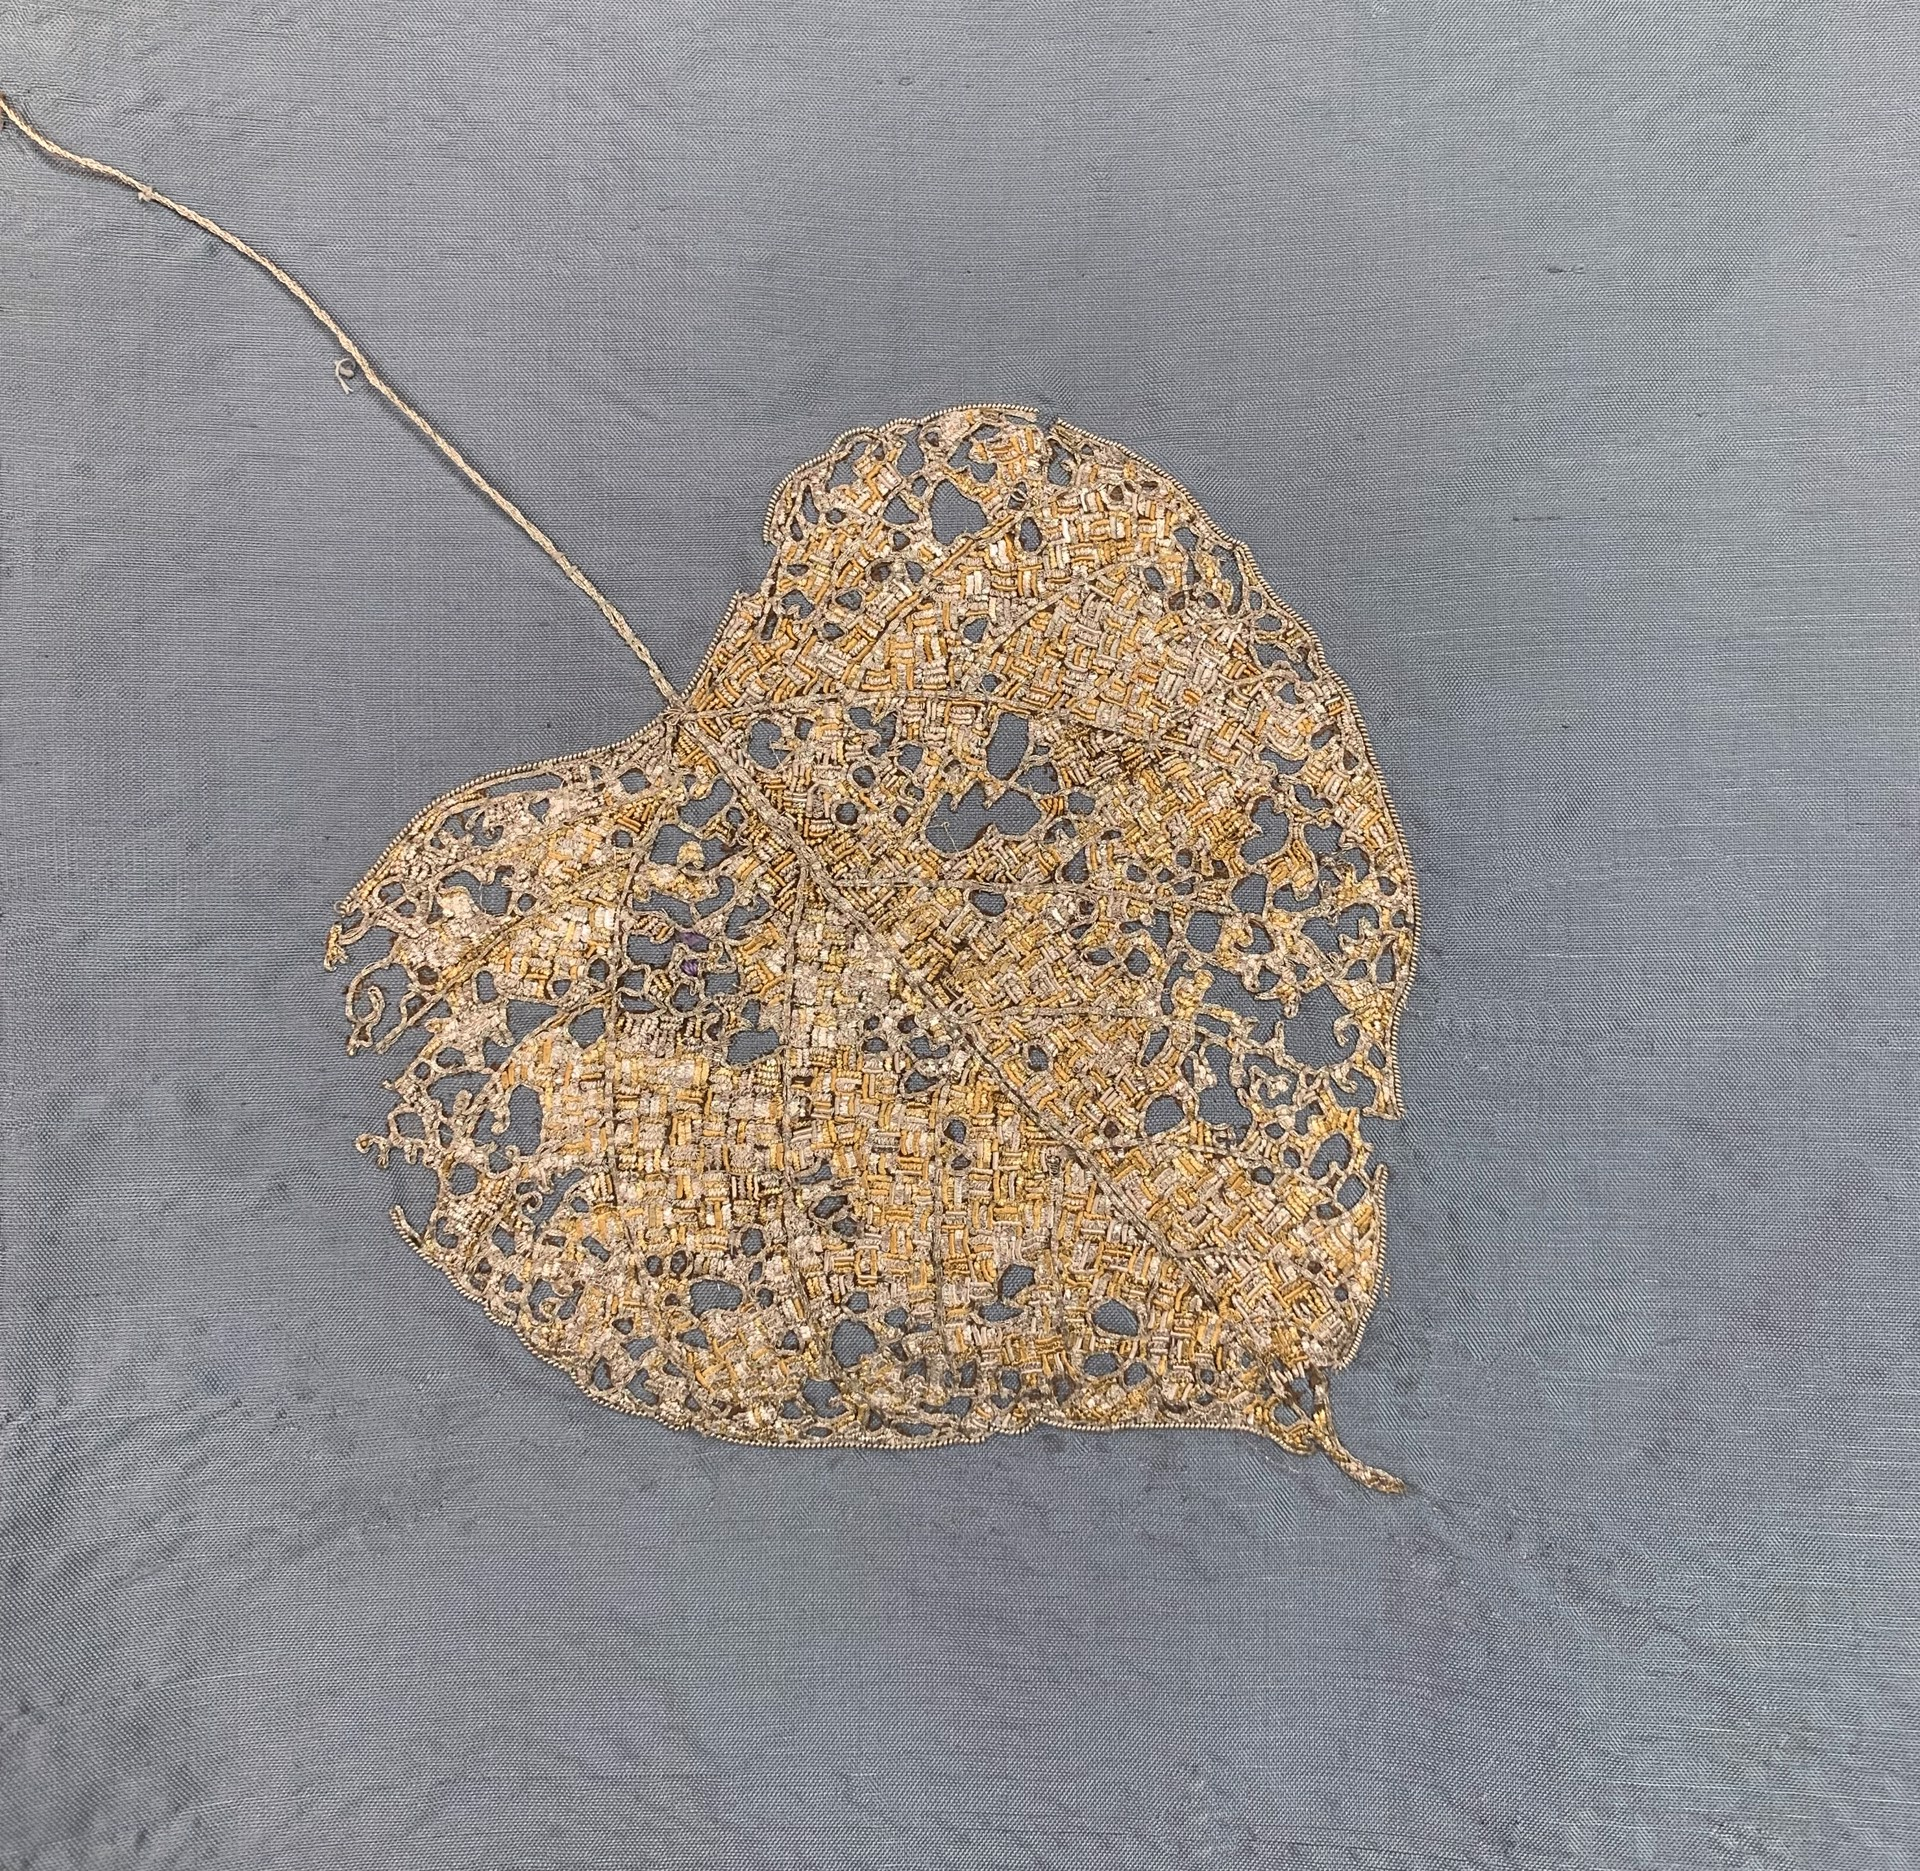 Meditation Screen II: Mulberry Leaf by Tiao Nithakhong Somsanith